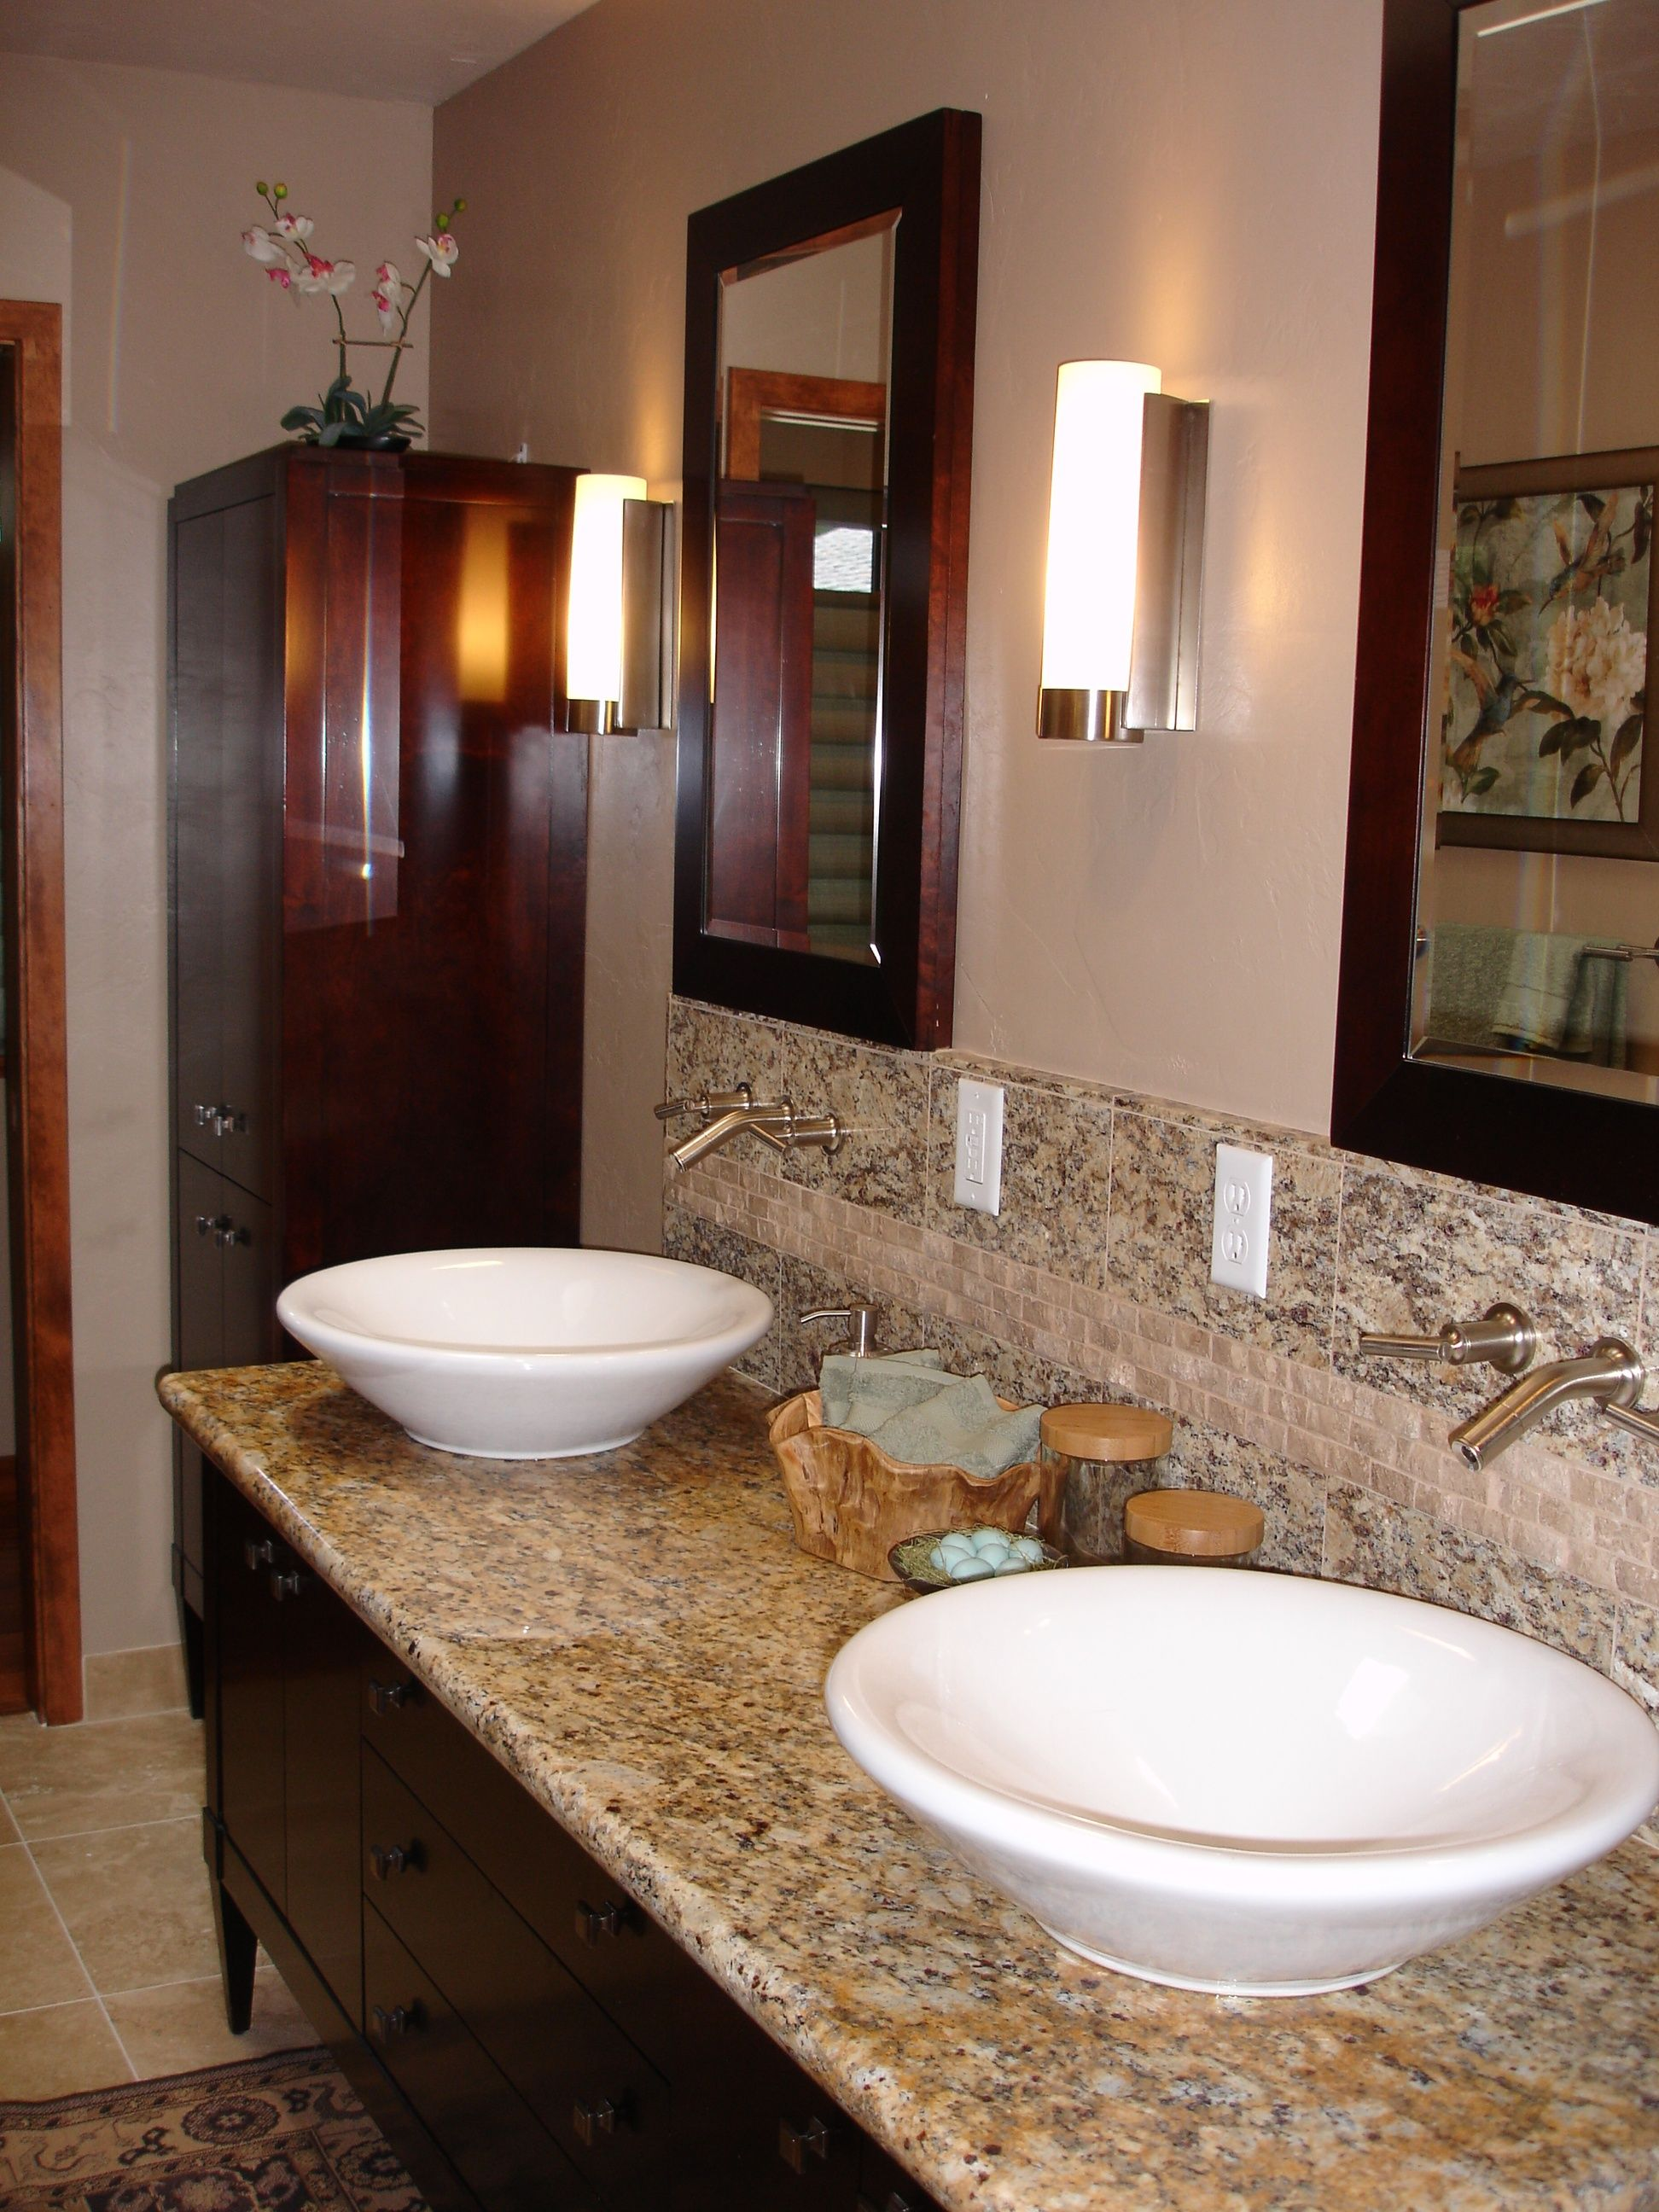 Vessel Sinks Wall Mounted Faucets And Granite Make This A Showy